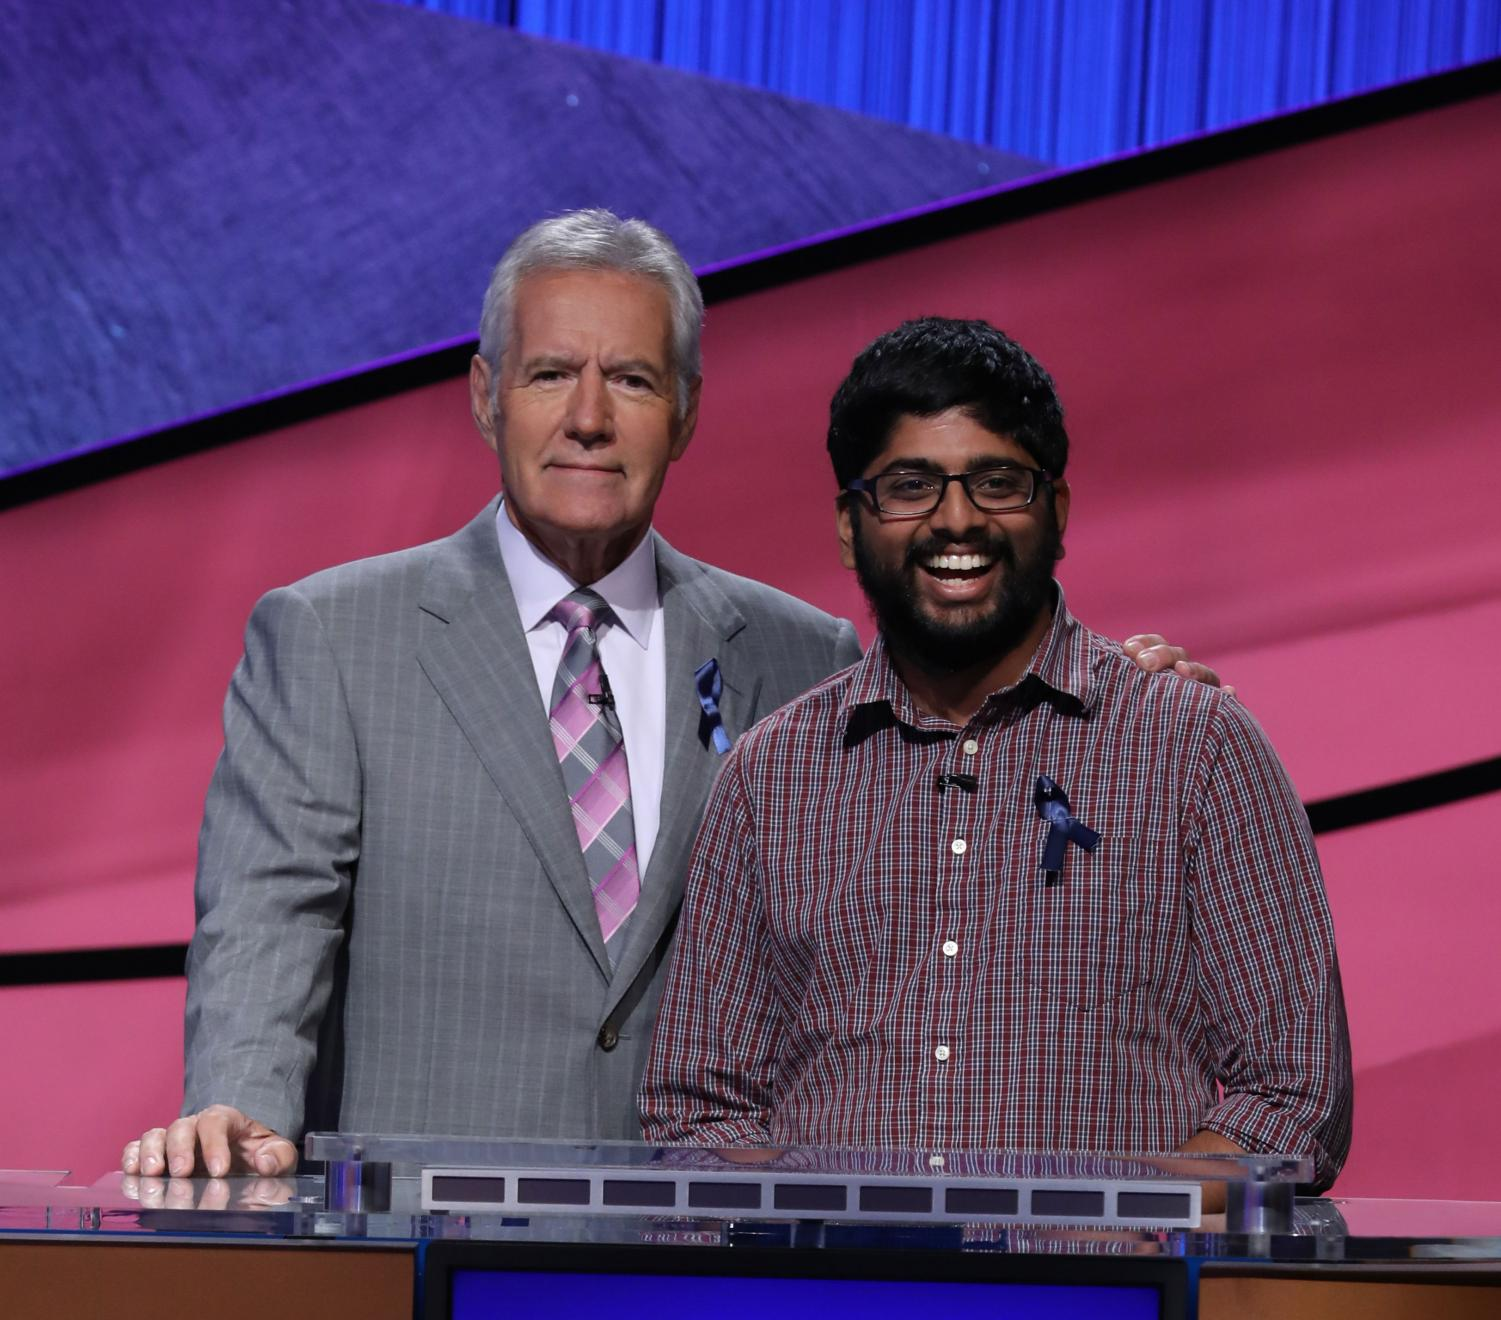 Pranjal Vachaspati, graduate student in Engineering, poses with Alex Trebek, gameshow host for